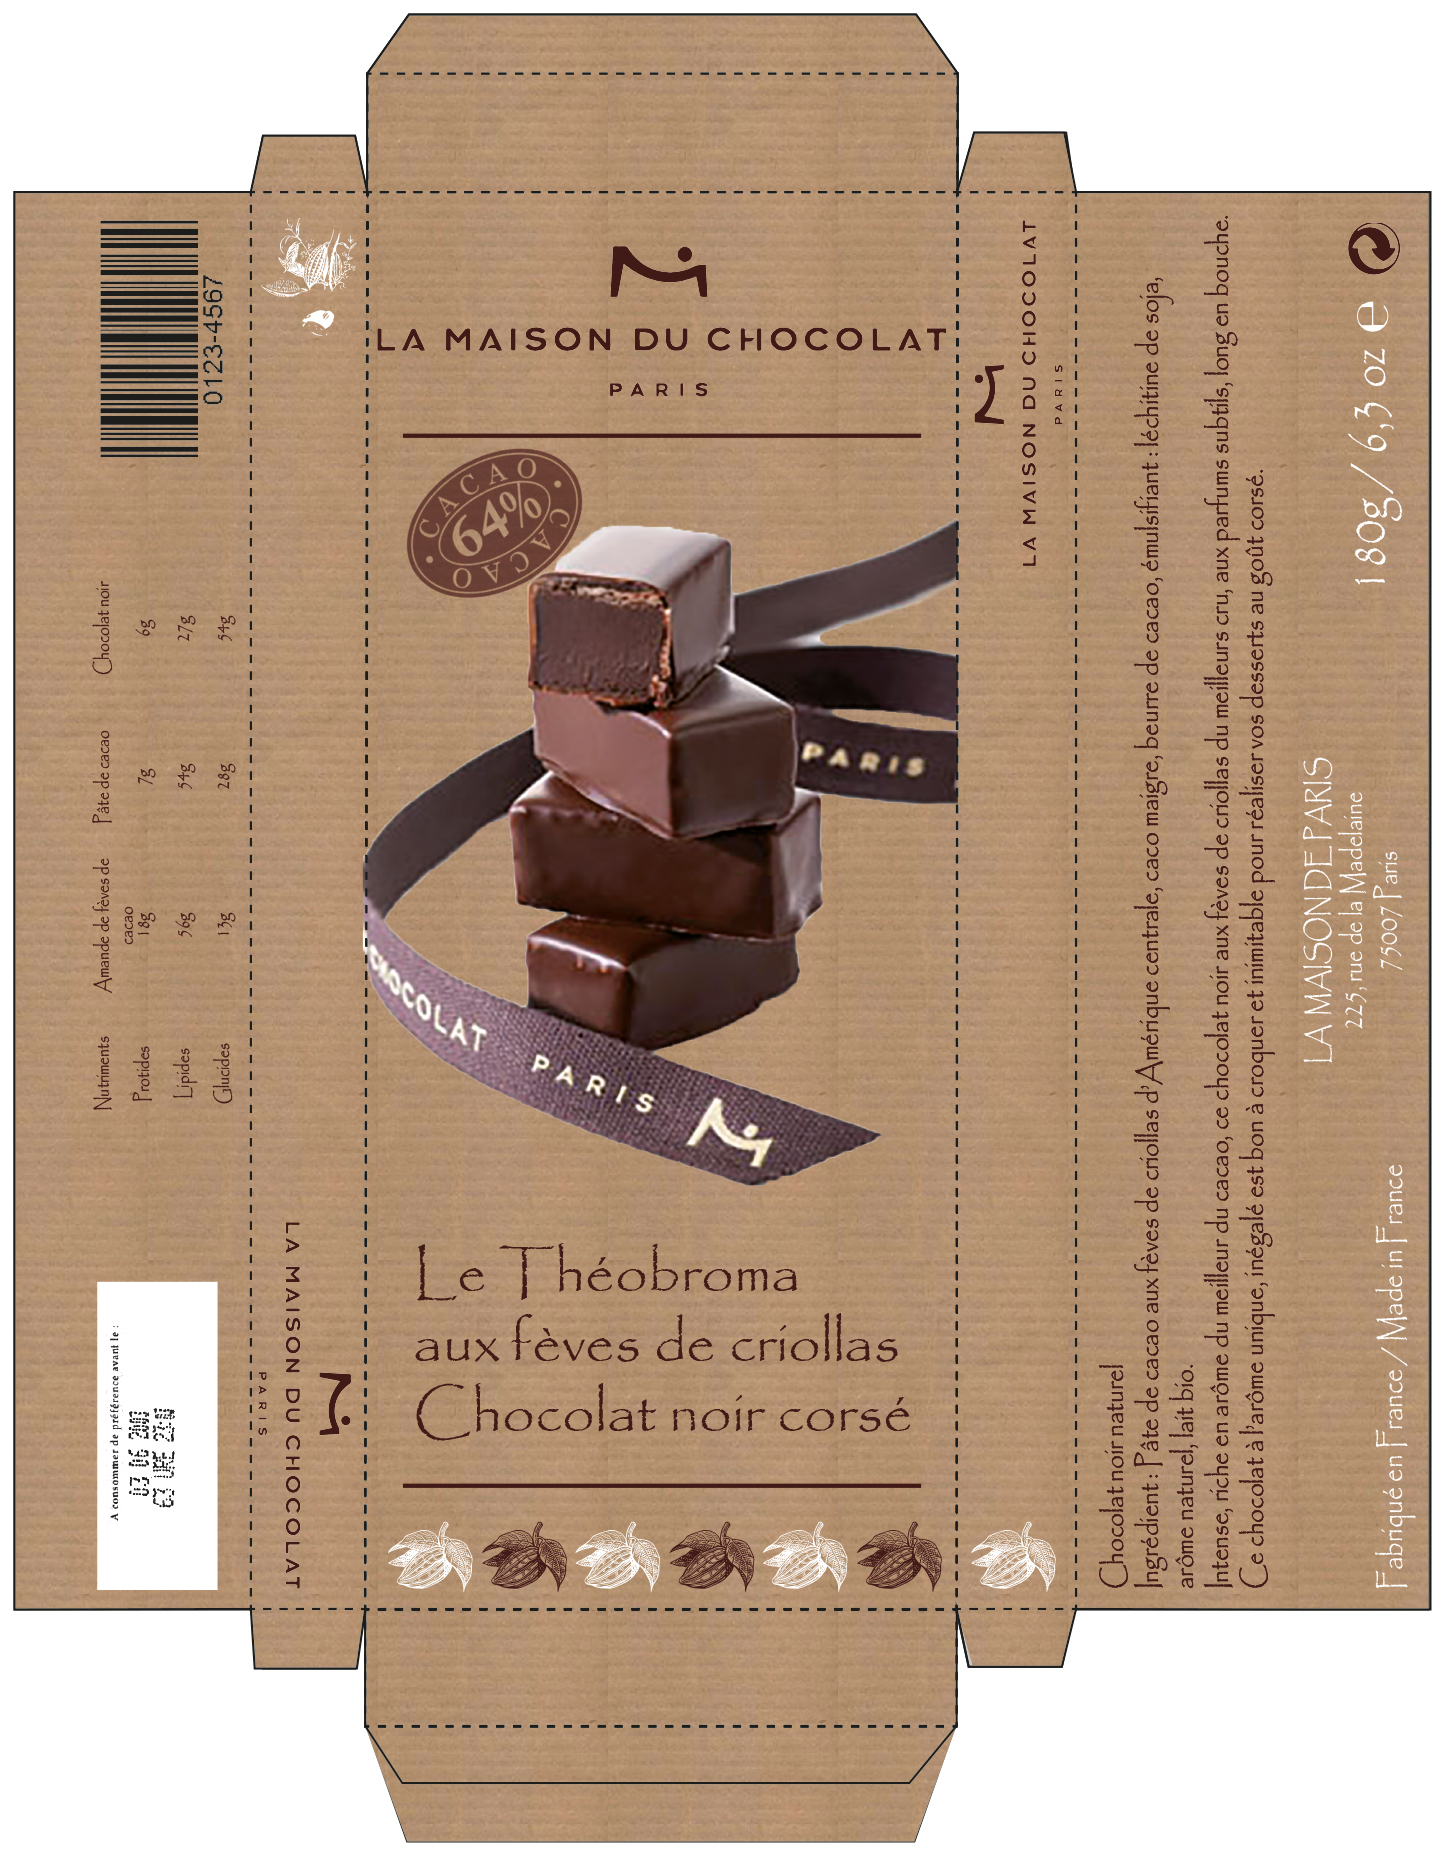 graphisme-packaging-emballage-papier-chocolat